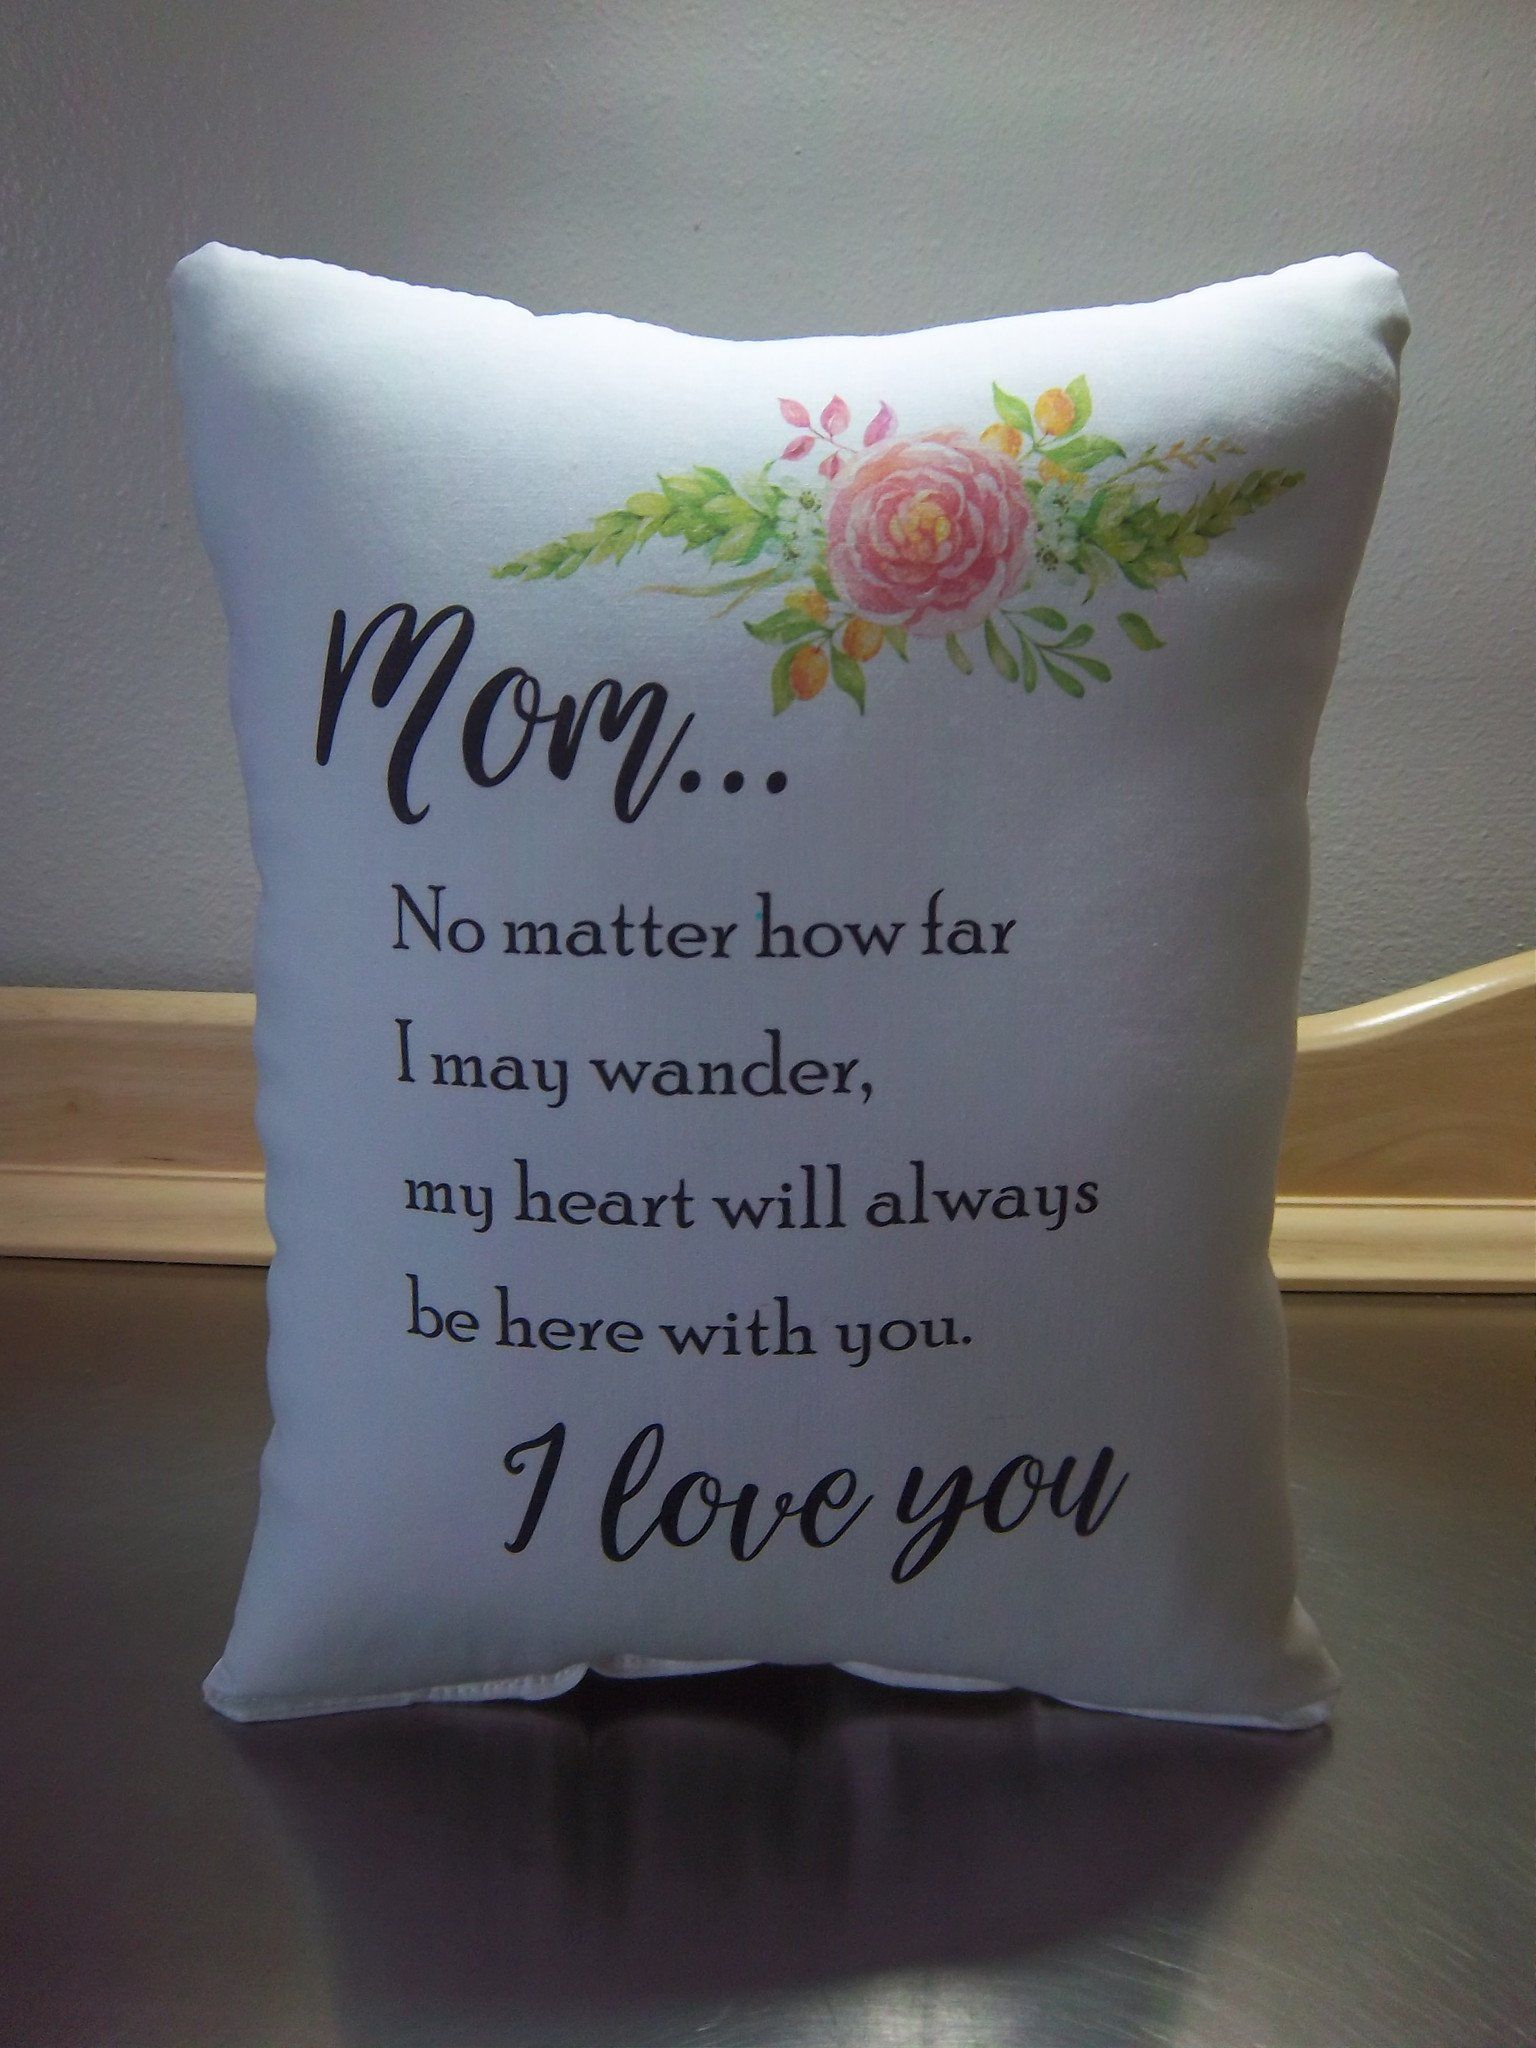 Pillows mom birthday gift throw pillow mother long distance gift pillows easter gift for mom white poplin throw pillow mother birthday gift home decor negle Choice Image